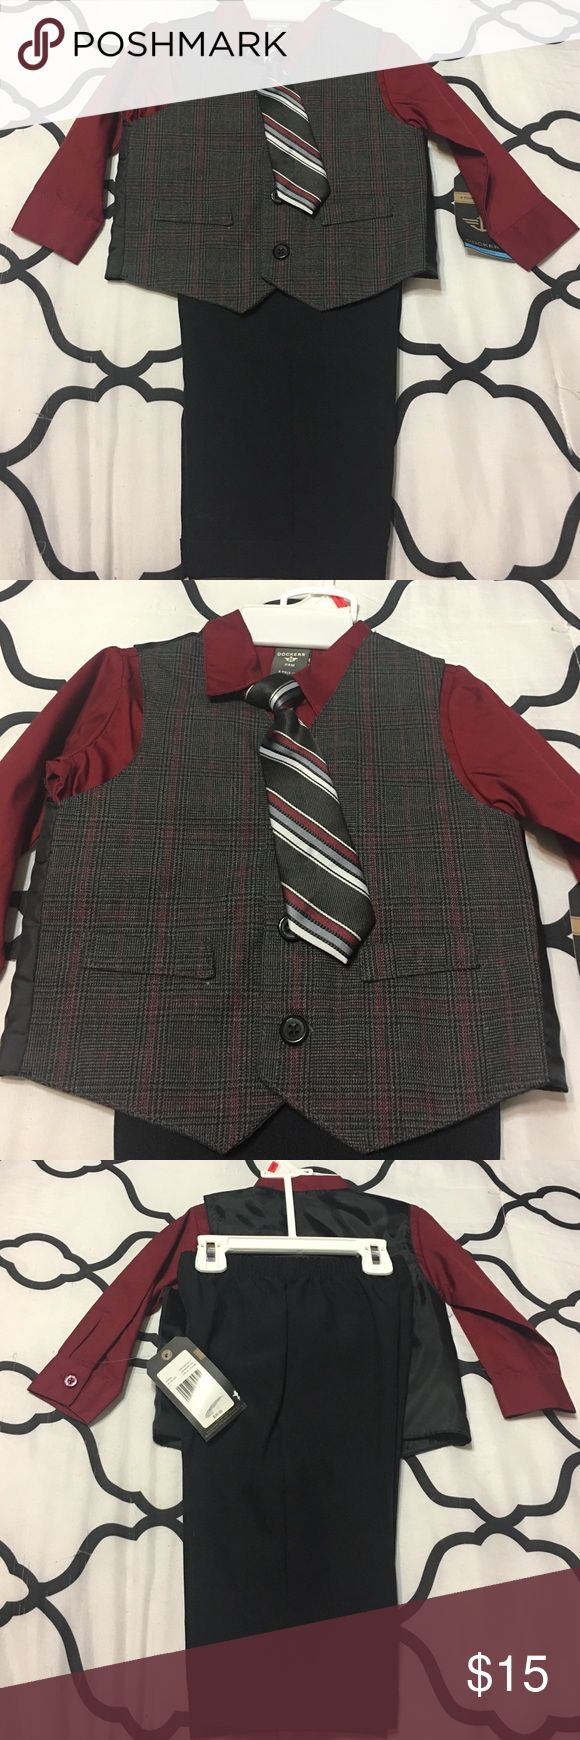 Dockers suit Dockers 4 piece suit. Dark red shirt stripped vest and tie. Black pants with detachable clip tie. Brand new with tags. Size 24 months Other